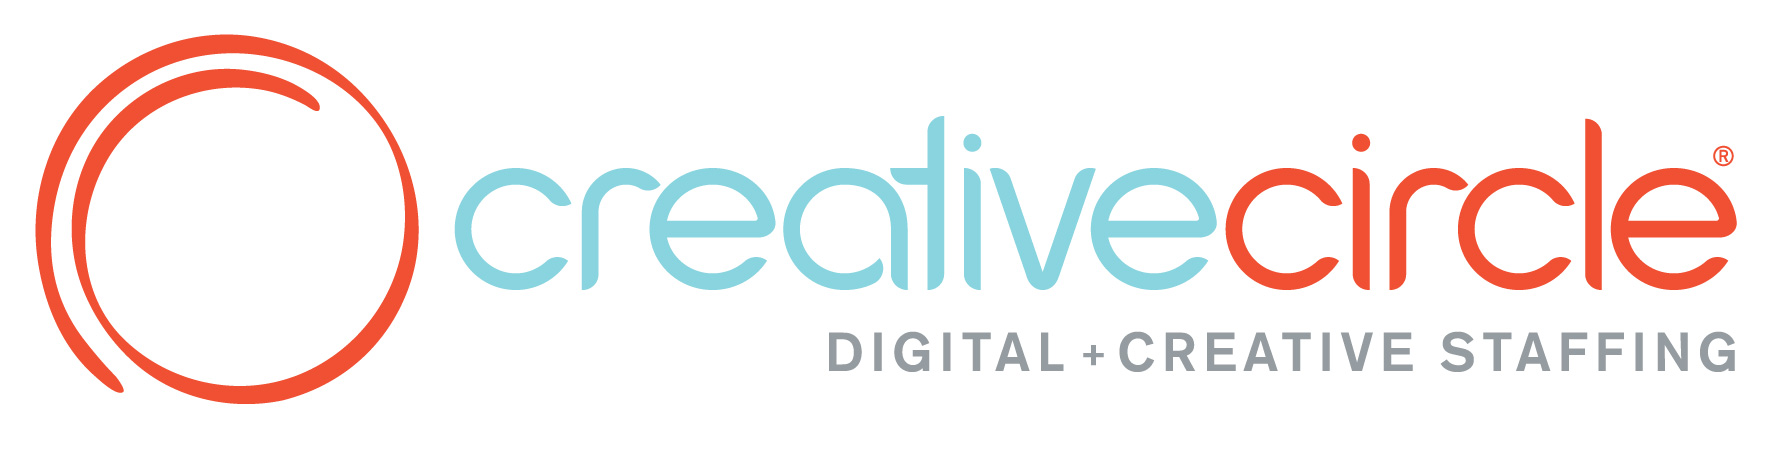 Digital + Creative Staffing